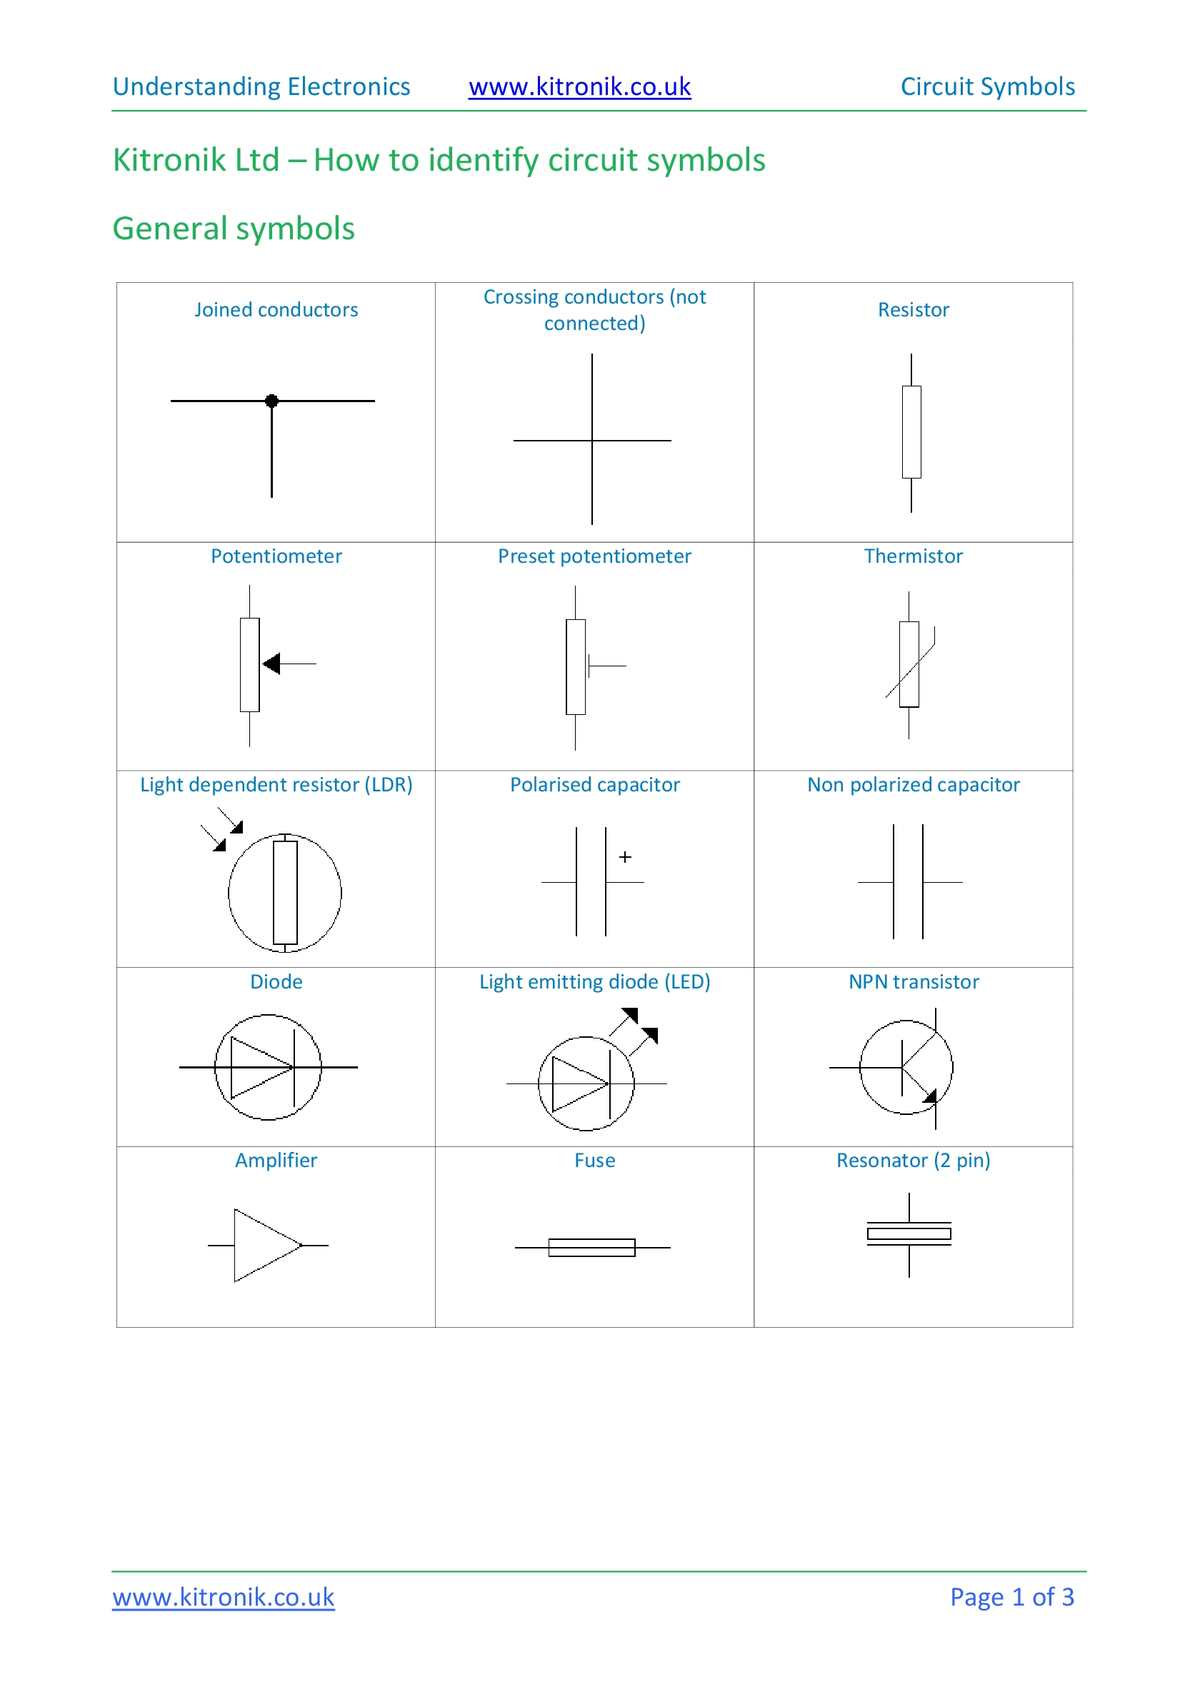 Calamo How To Identify Electronic Circuit Symbols Double Pole Throw Dpdt The Schematic Symbol For